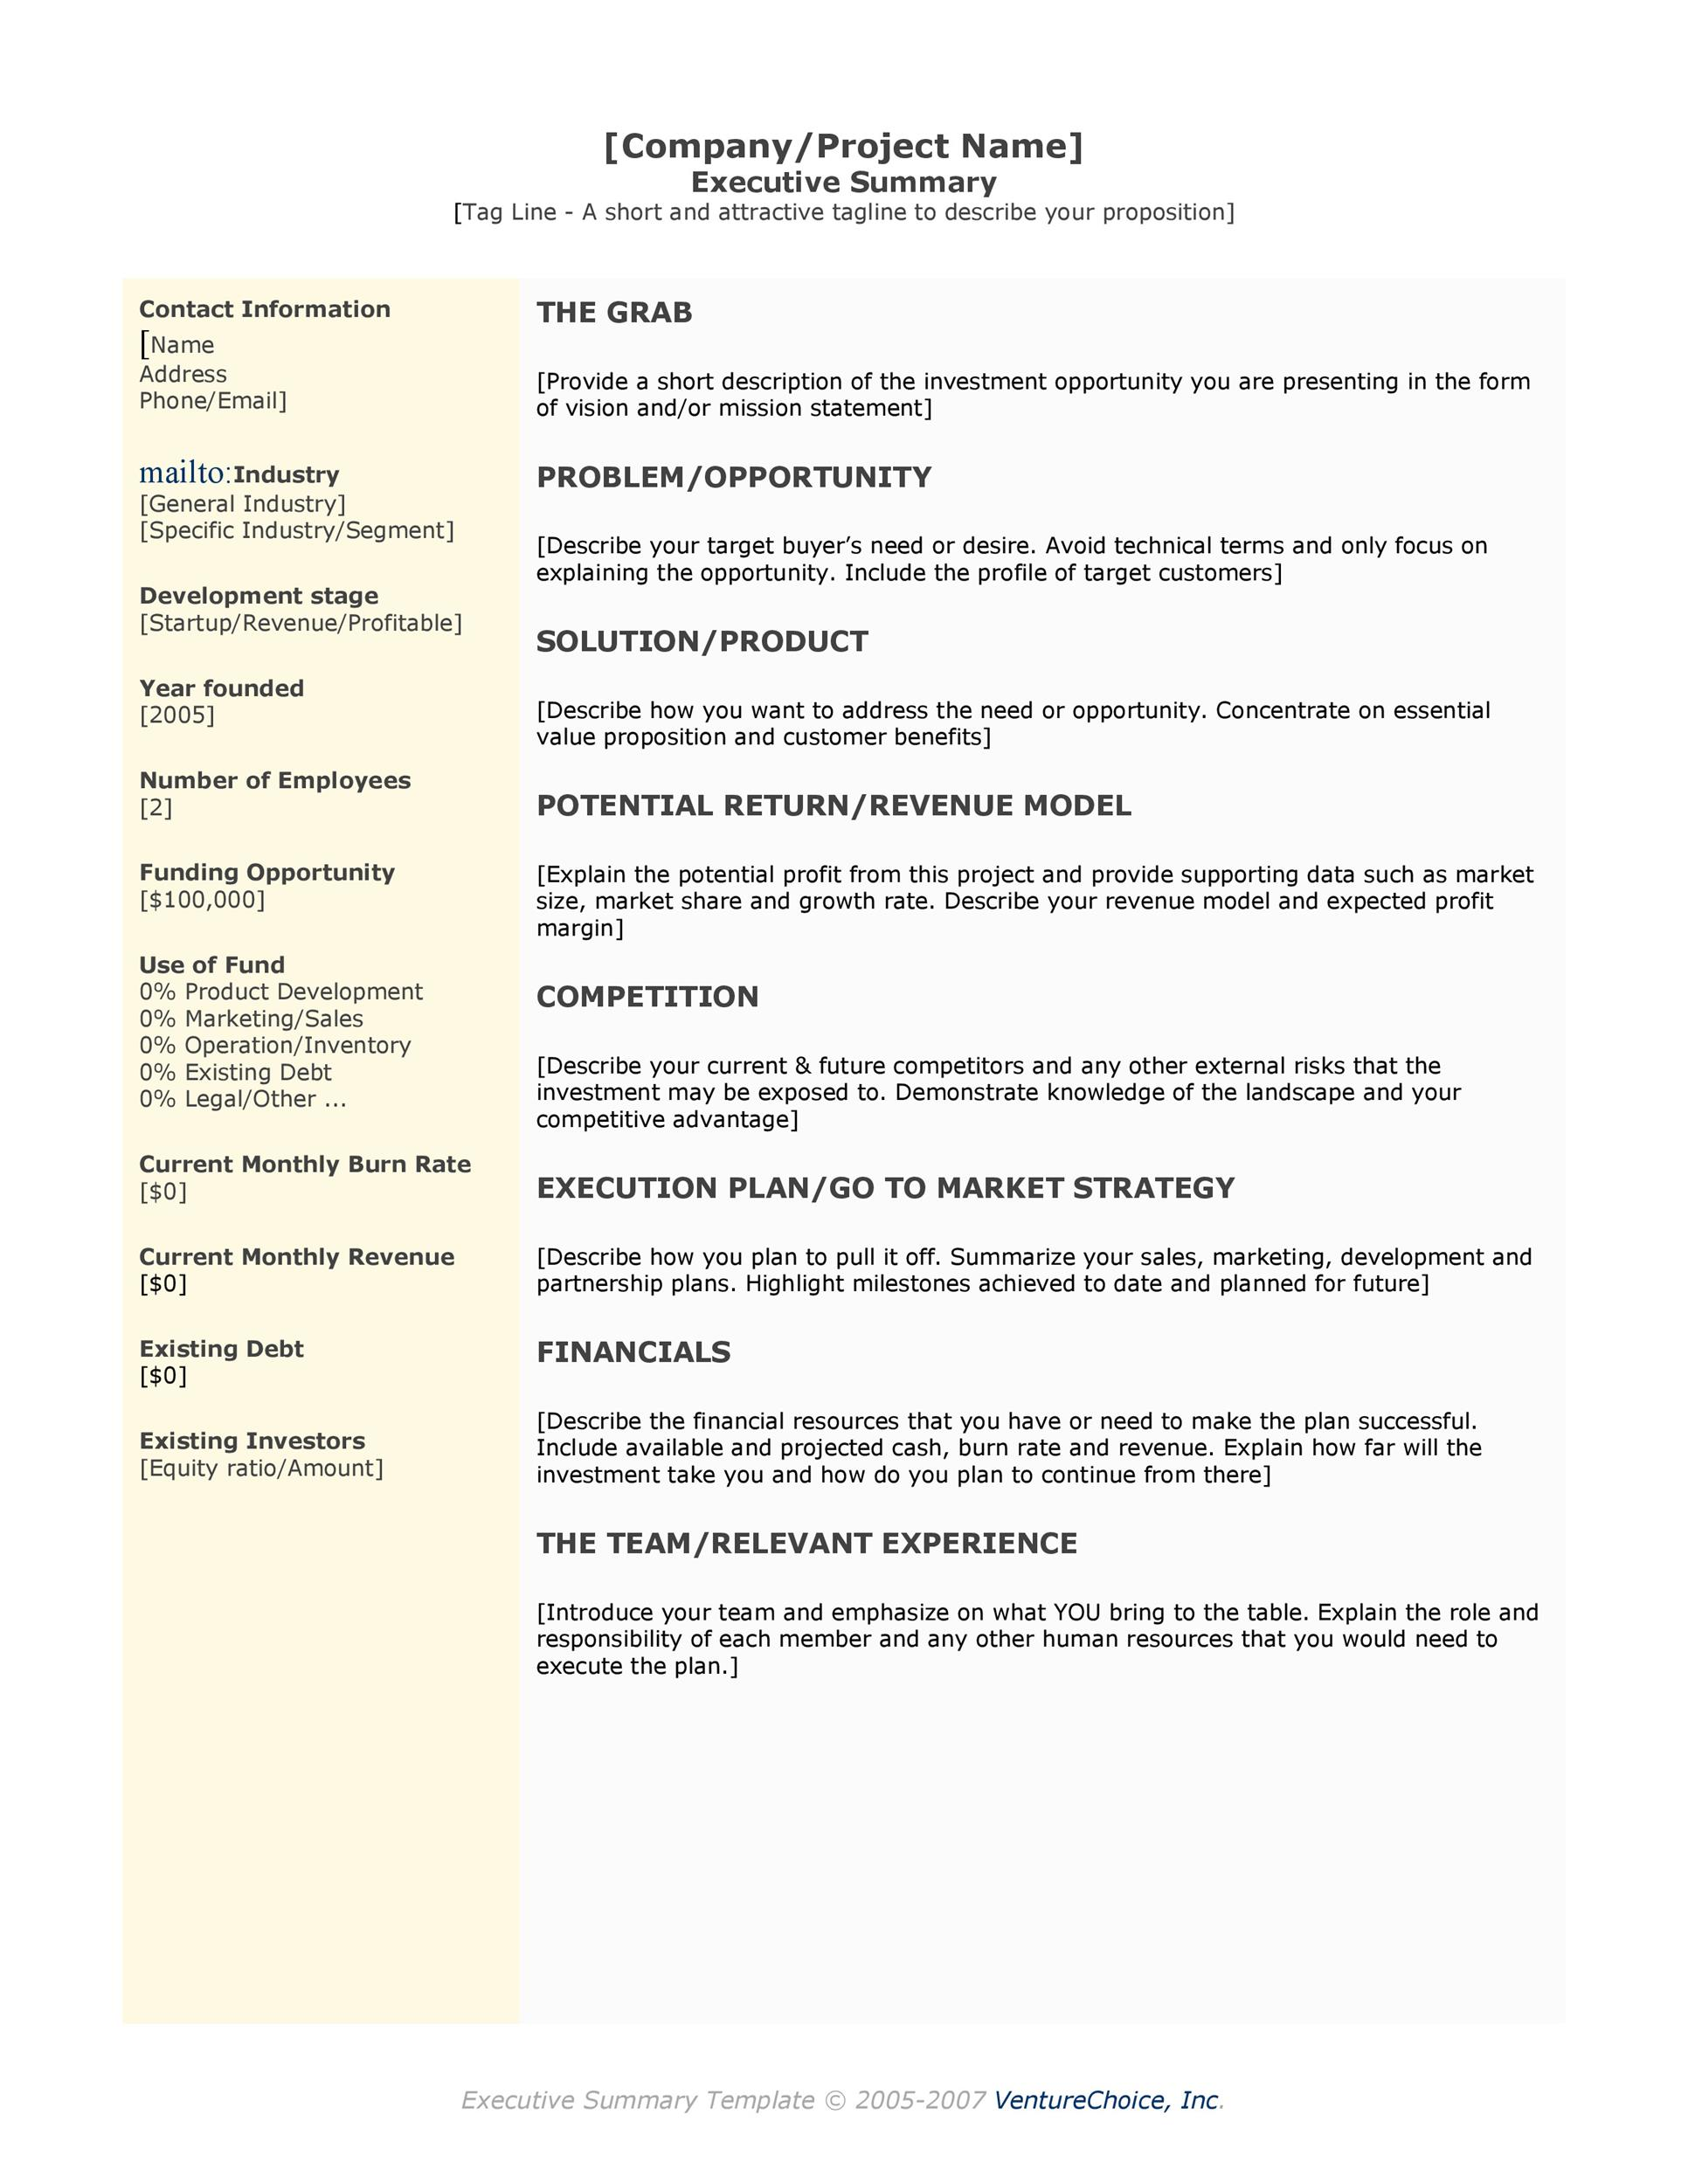 Free Executive Summary Template 02